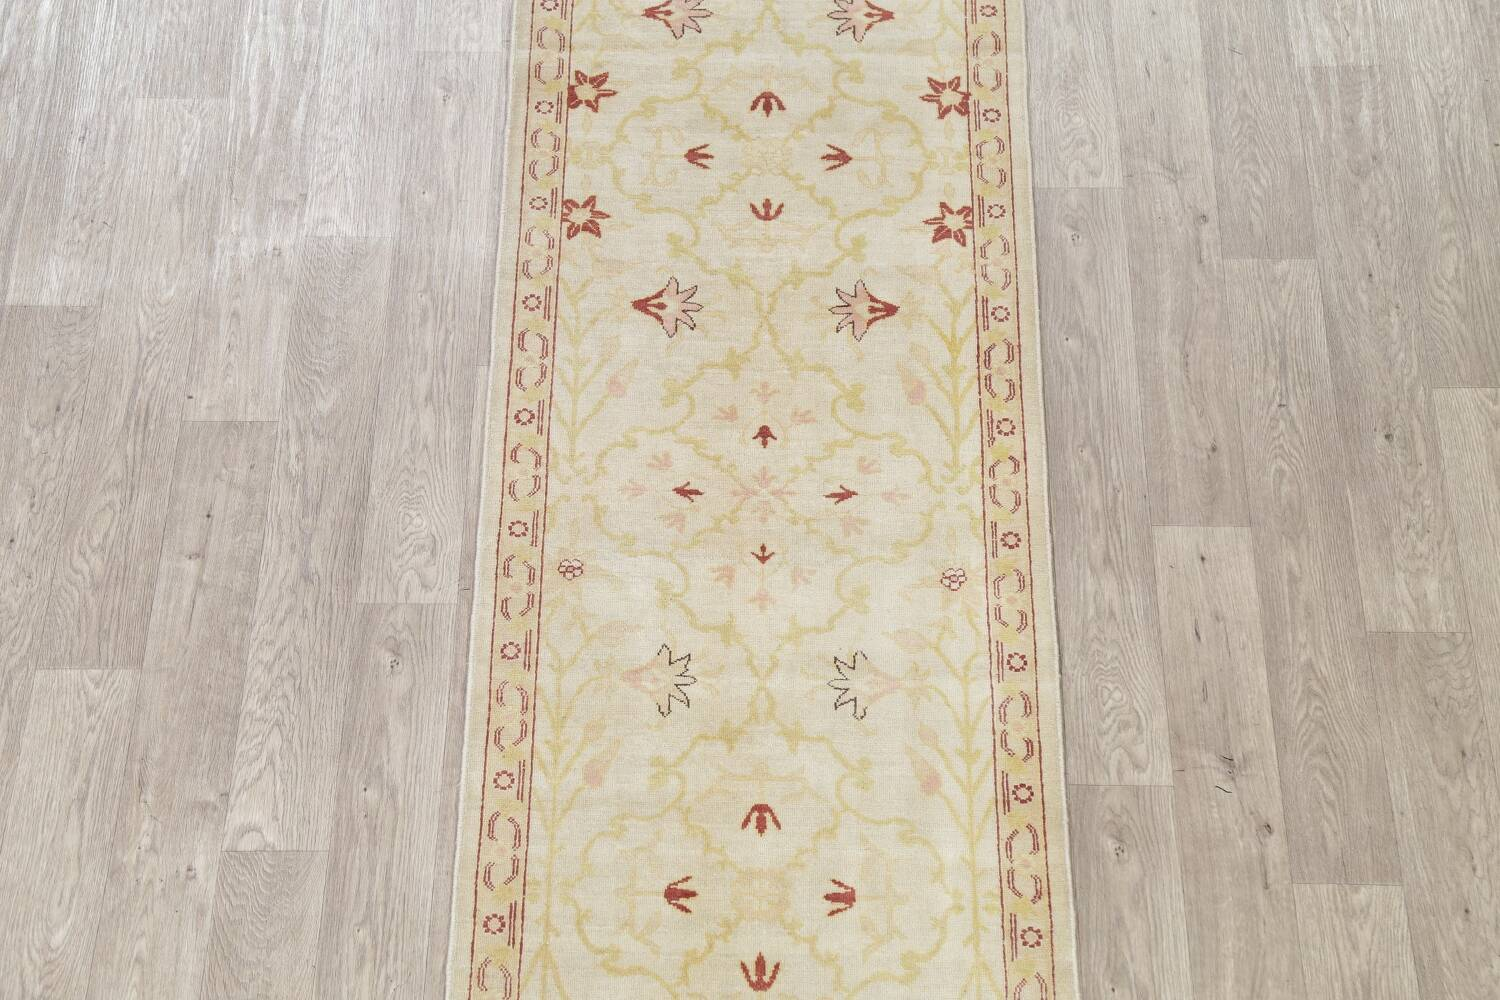 Vegetable Dye Beige Oushak Egyptian Runner Rug 3x11 image 3